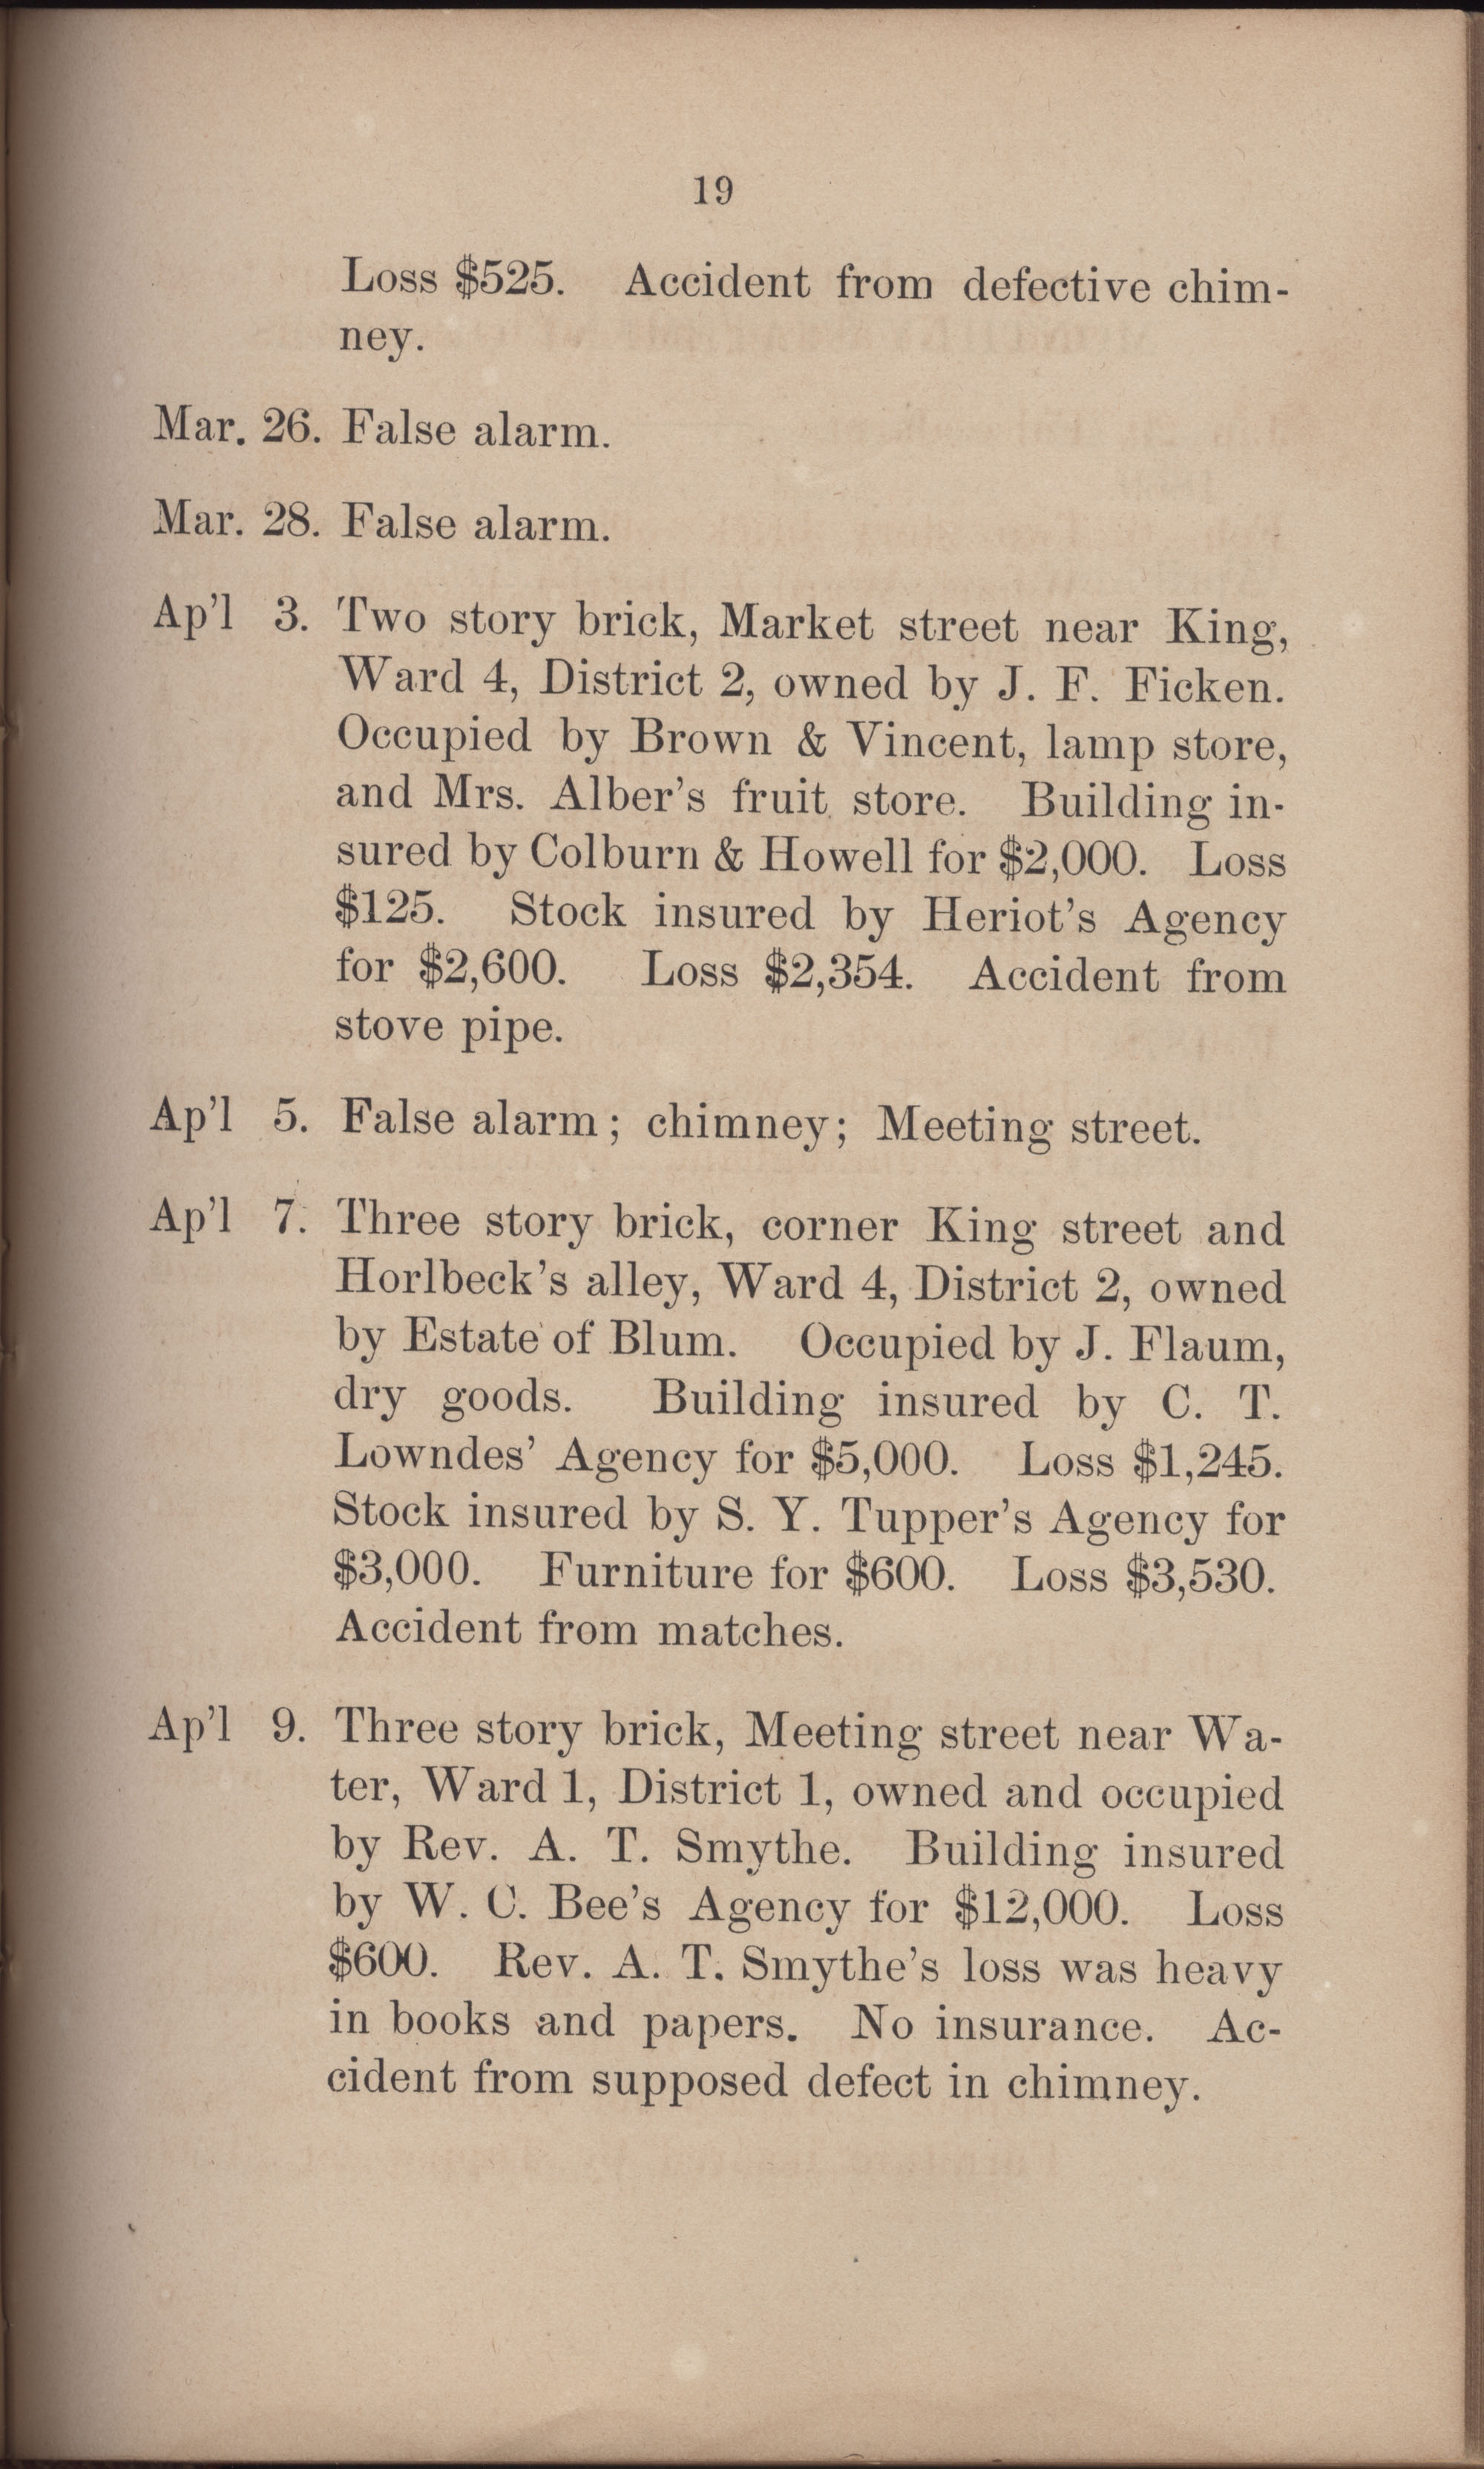 Annual Report of the Chief of the Fire Department of the City of Charleston, page 310